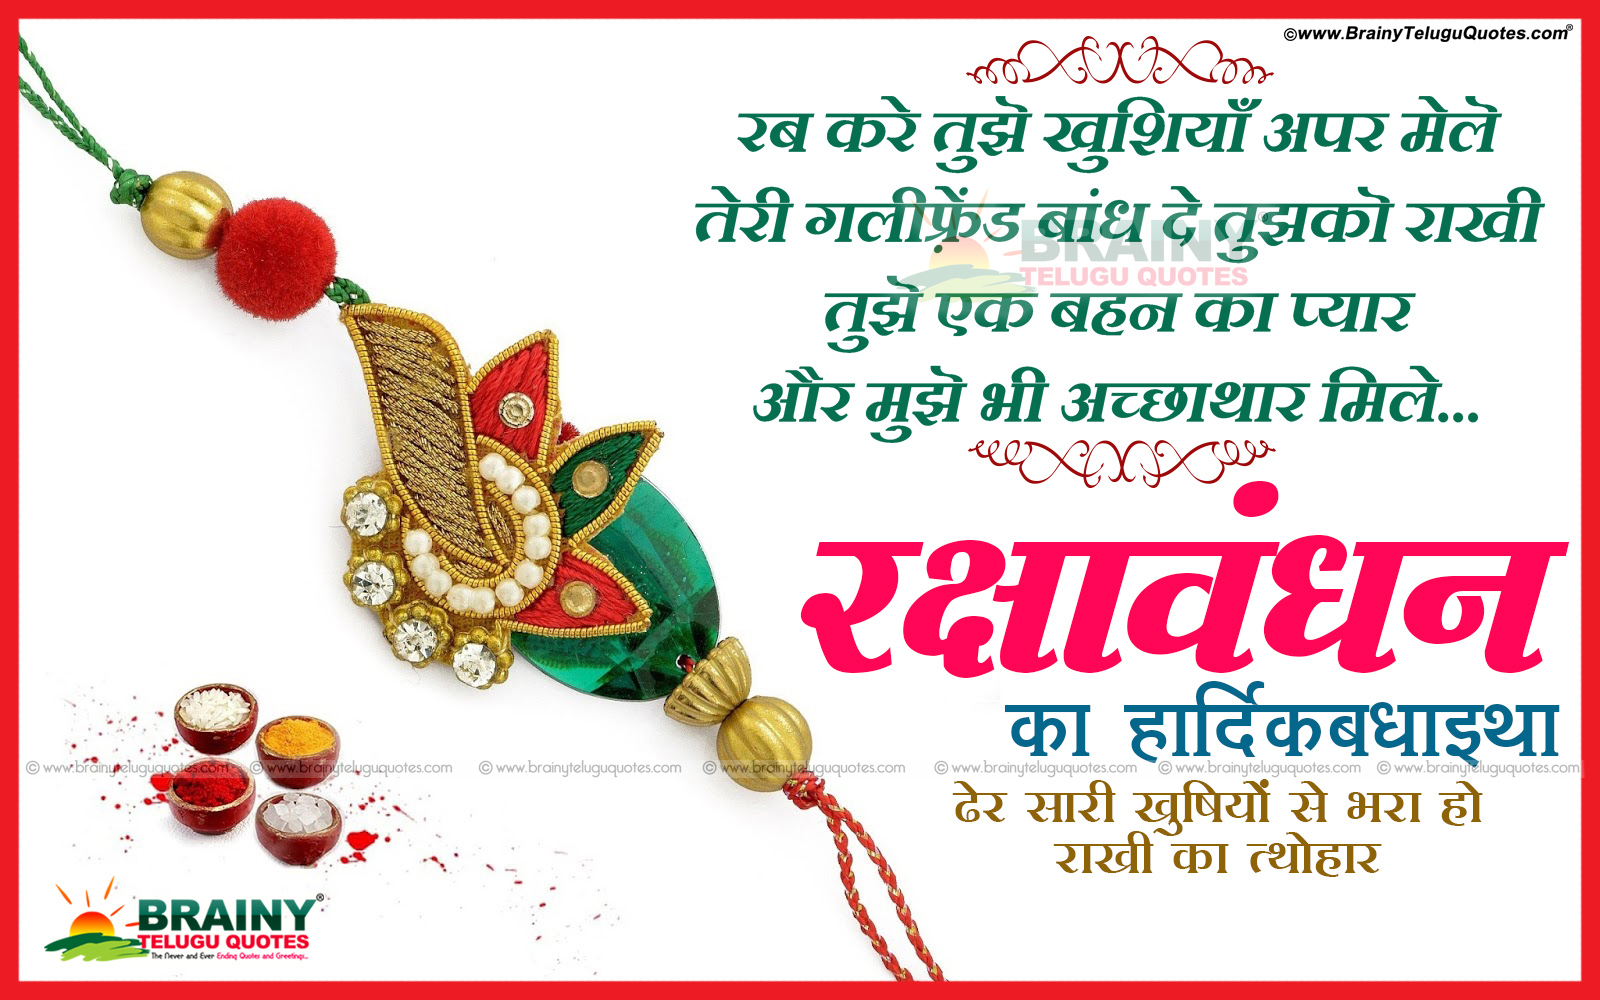 Raksha Bandhan Greetings Card Ecards And Cliparts For Brother And